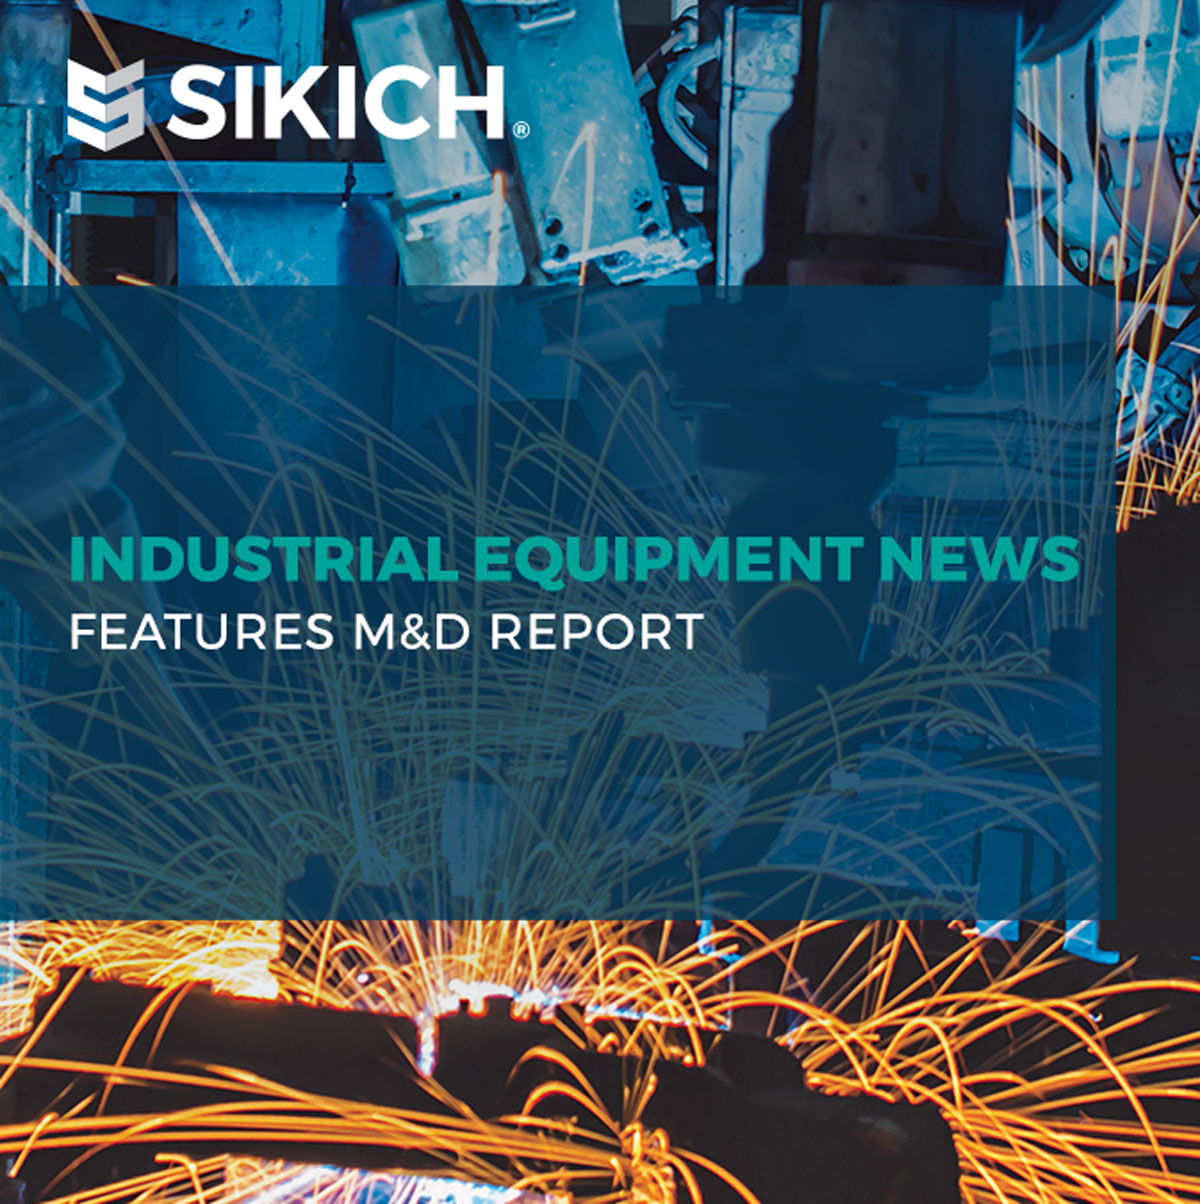 M&D-Featured-in-Industrial-Equipment-News